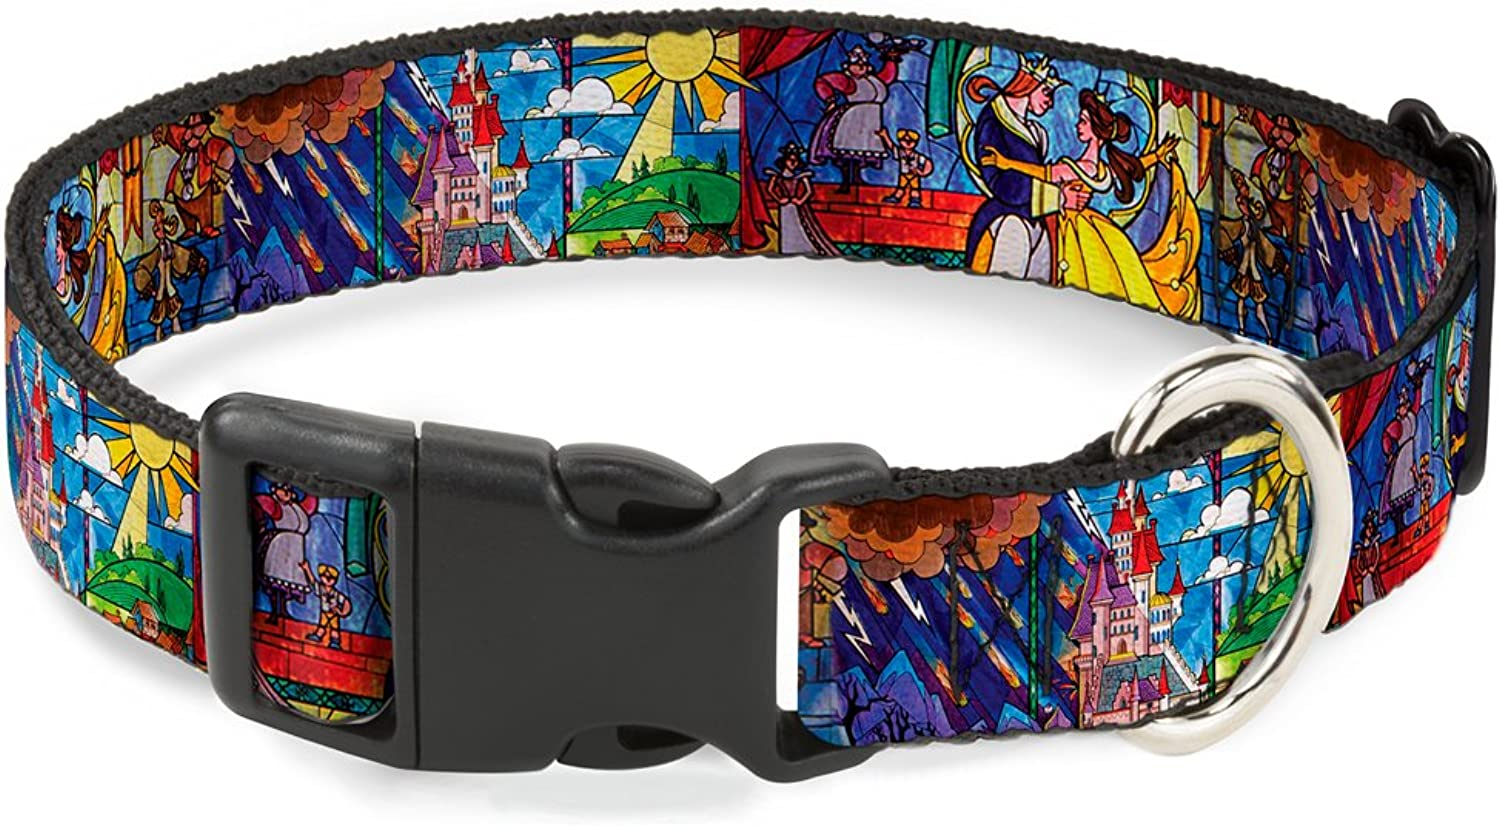 BuckleDown Beauty & The Beast Stained Glass Scenes Plastic Clip Collar, Narrow Large 915